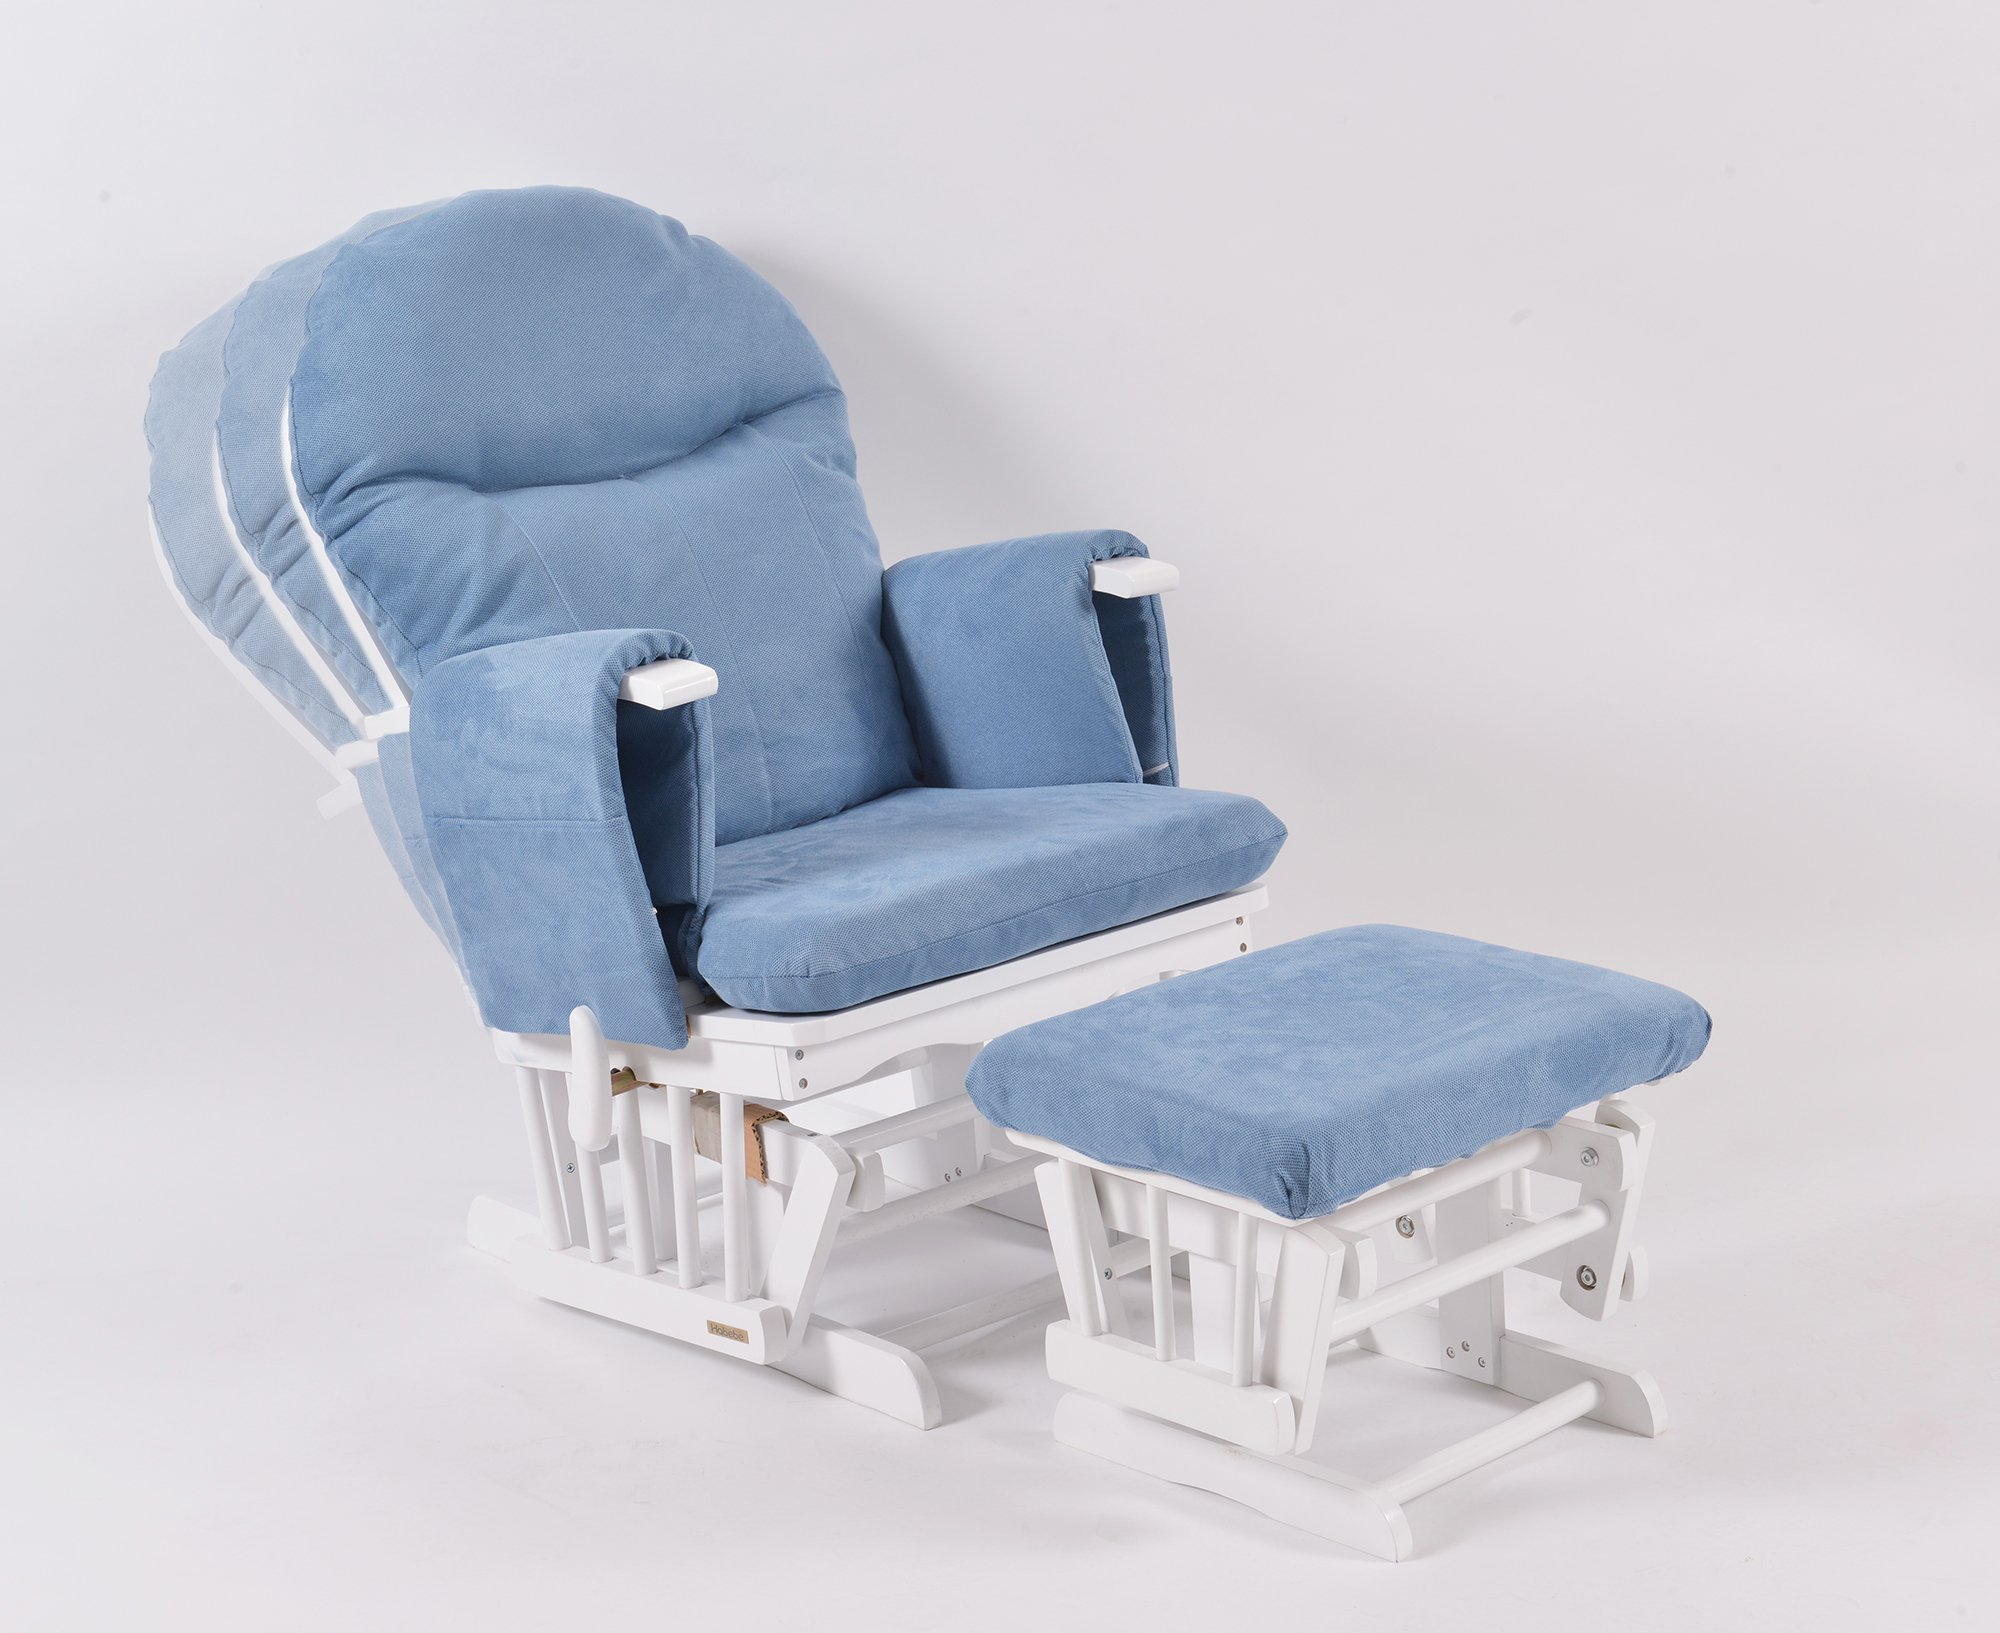 Sensational Habebe Glider Rocking Nursing Recliner Maternity Chair With Footstool Washable Covers Pabps2019 Chair Design Images Pabps2019Com